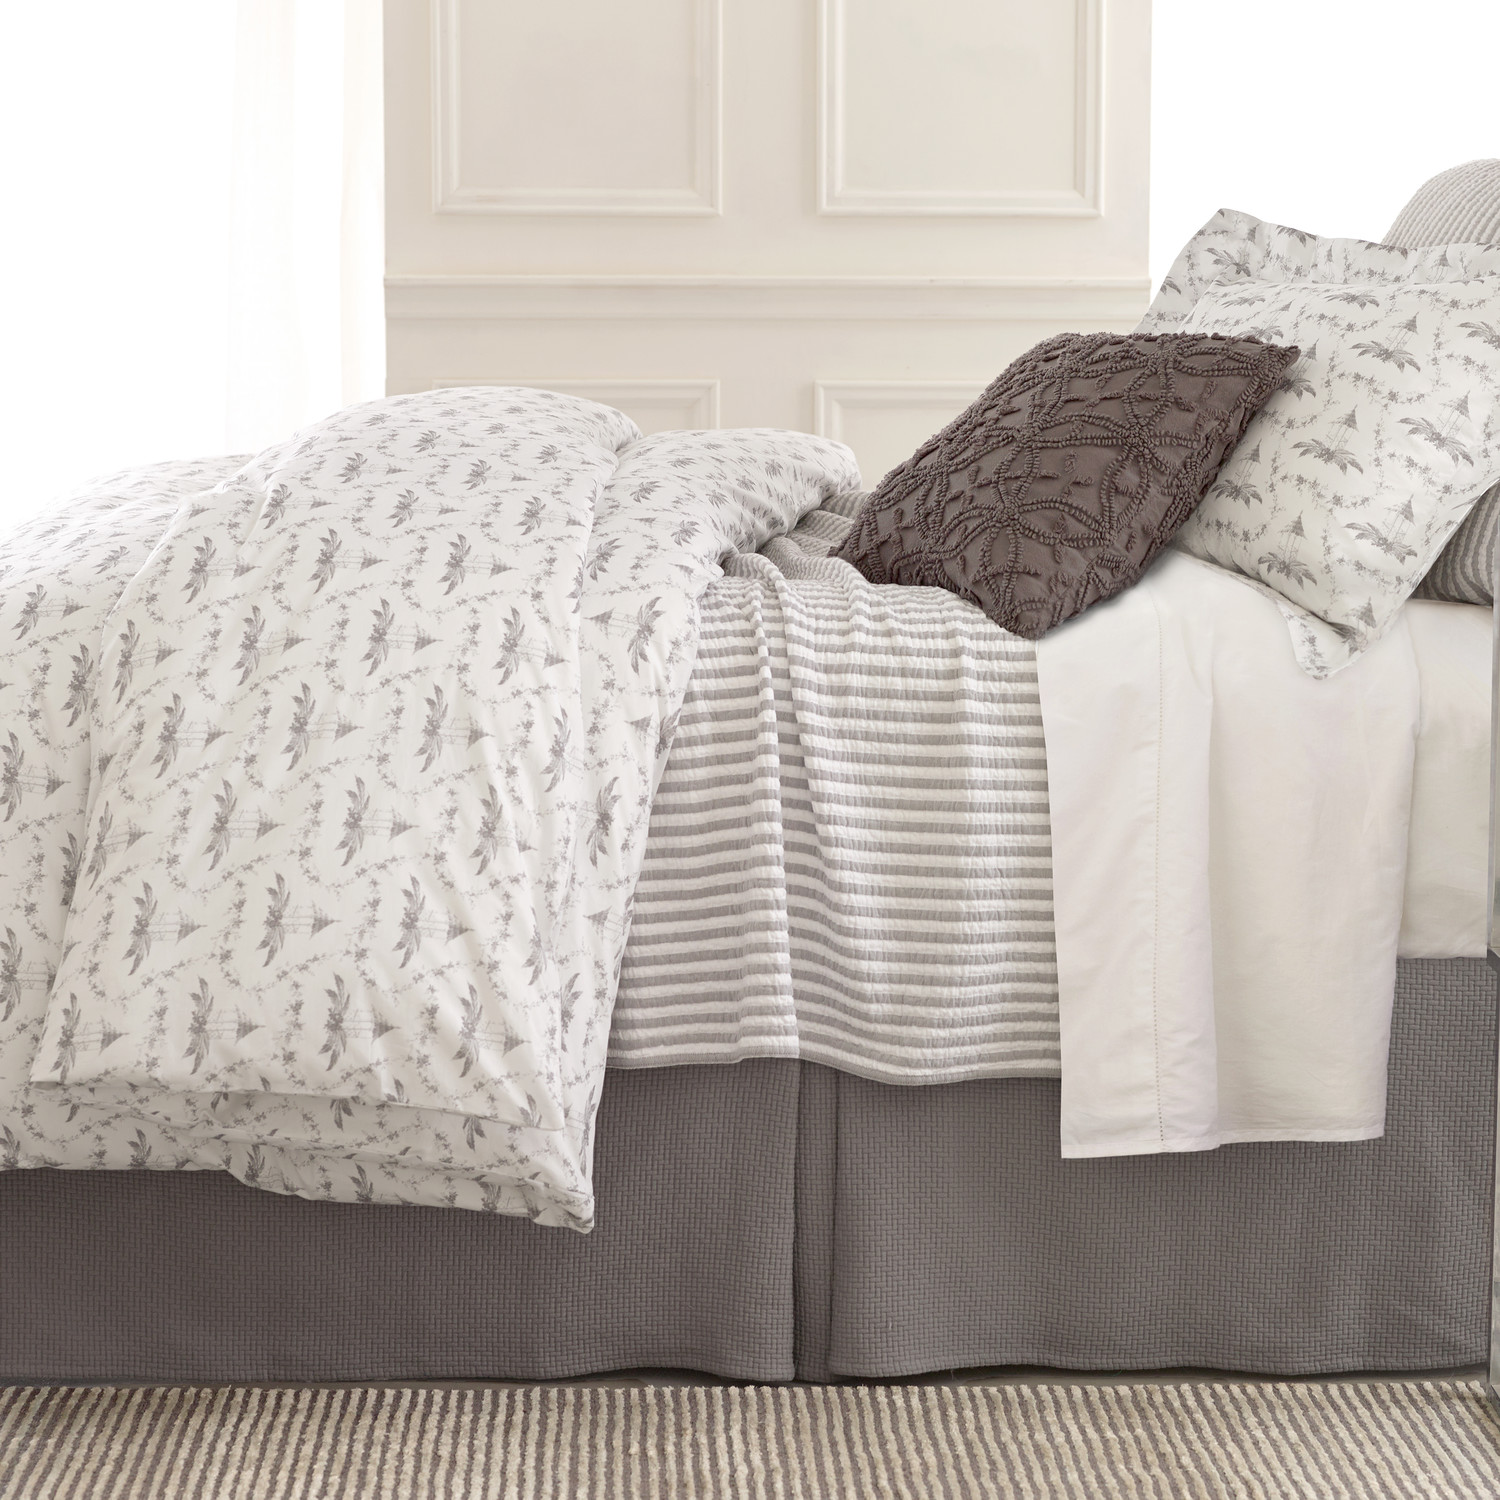 Charming Pine Cone Hill Tiki Toile Duvet Cover In White And Gray For Bed Ideas